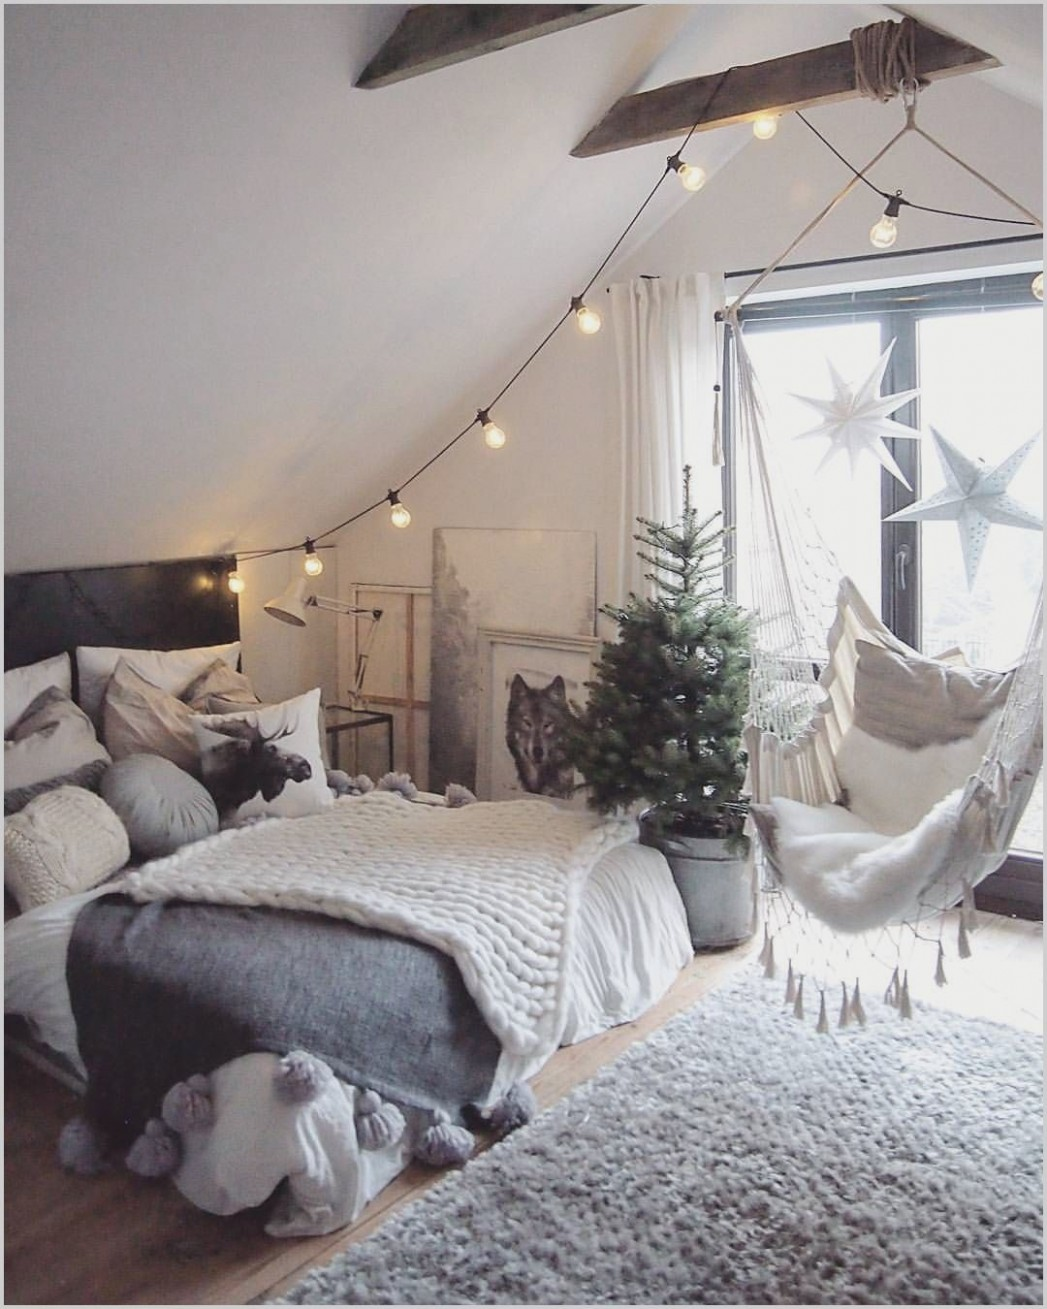 Bedroom Ideas for Young Adults Pinterest in 11  Bedroom decor  - Bedroom Ideas On Pinterest